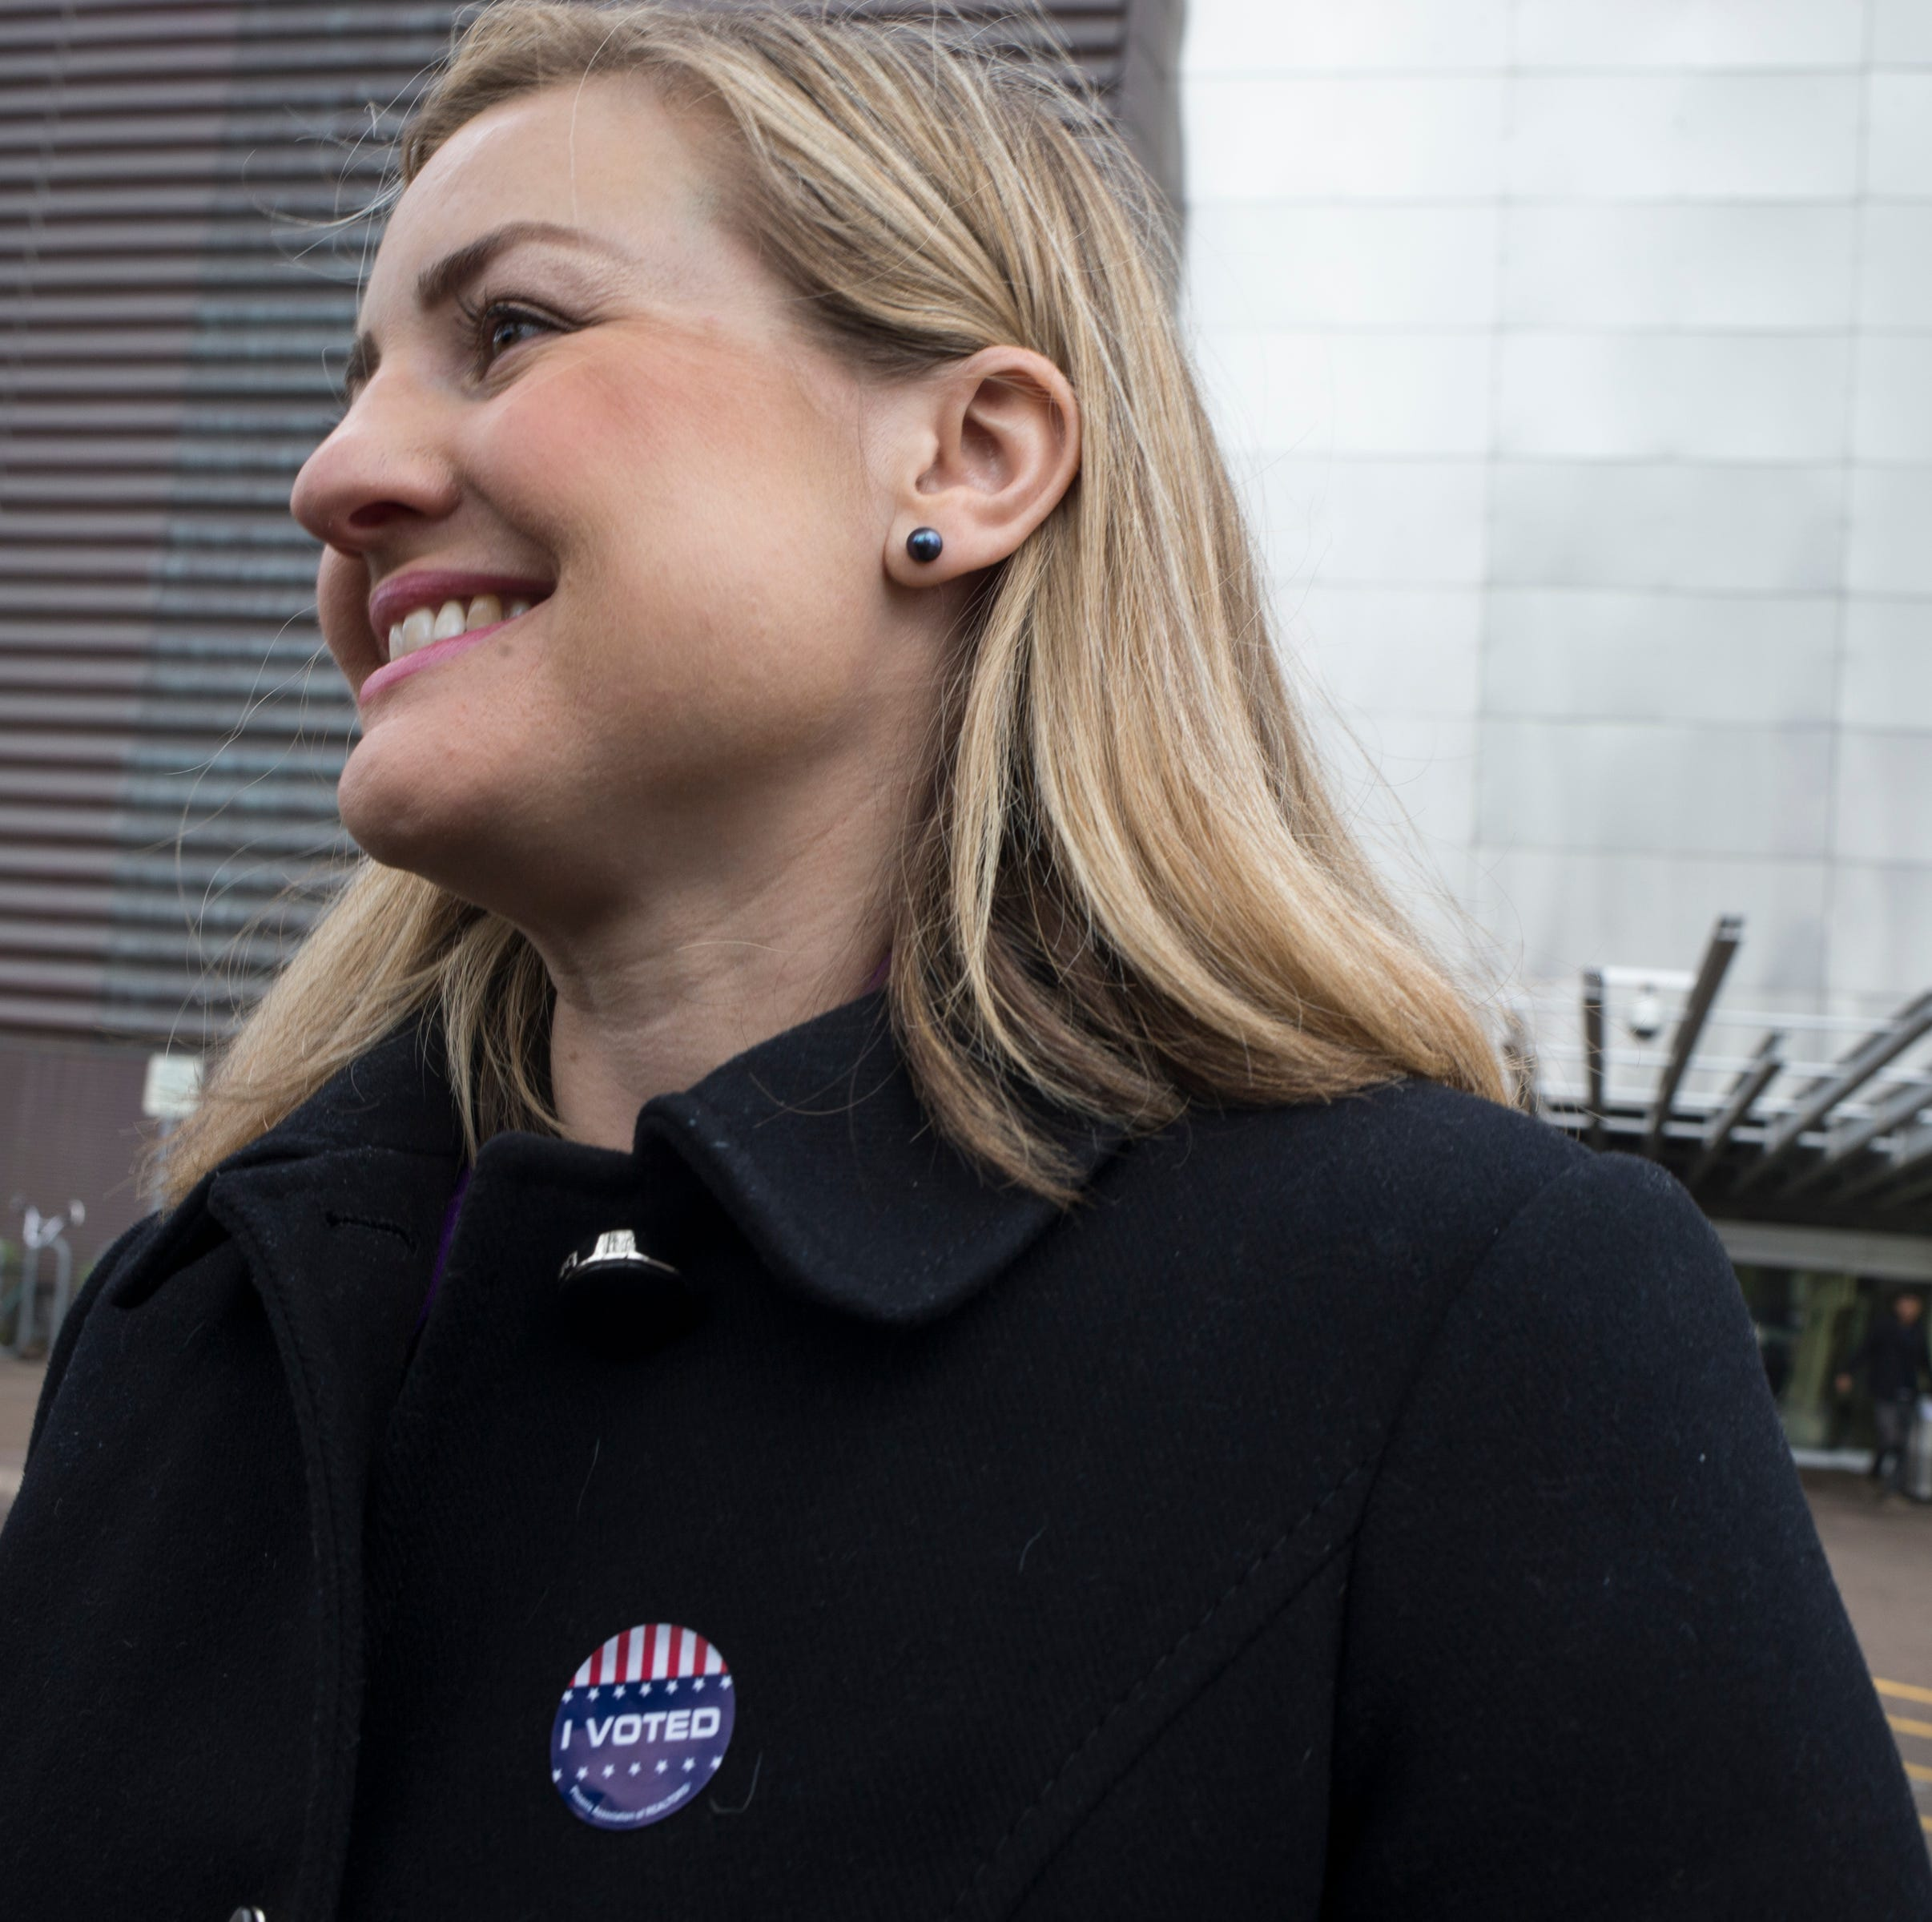 Phoenix mayoral election results: Kate Gallego leads in early returns